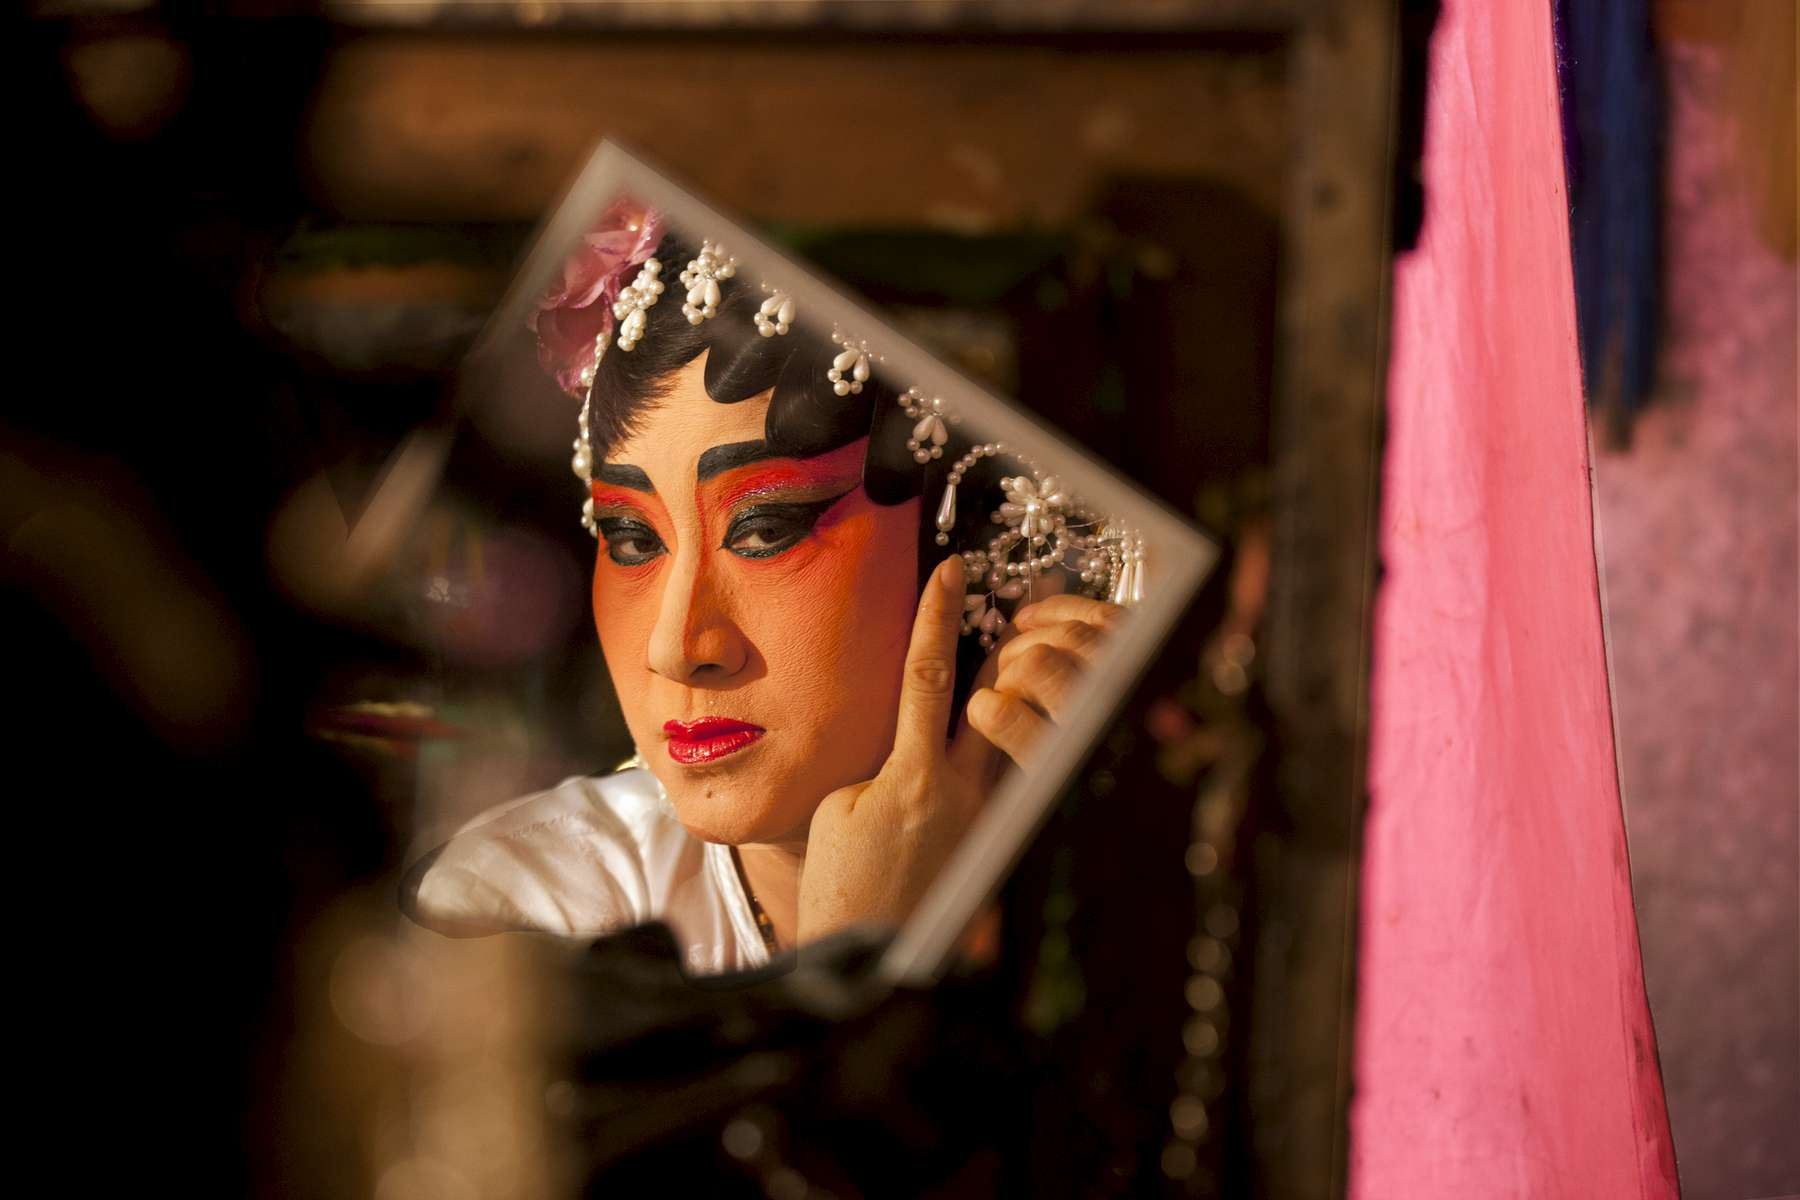 BANGKOK, THAILAND - JANUARY 25:  Jeng gets ready backstage she is with the Lao Yi Lai Heng Chinese opera  troupe as they act out the Teochew (Chaozhou) opera at the Plub Plachai temple on January 25, 2012 in Bangkok, Thailand. The traditional Chinese art form involving music, singing, martial arts and acting has a history of more than 500 years. There are about 30 members working with the group doing specials shows all week to celebrate the Chinese New year. The Chinese opera is popular in many parts of China,  Malaysia, Singapore, Thailand and Macau .(Photo by Paula Bronstein/Getty Images)